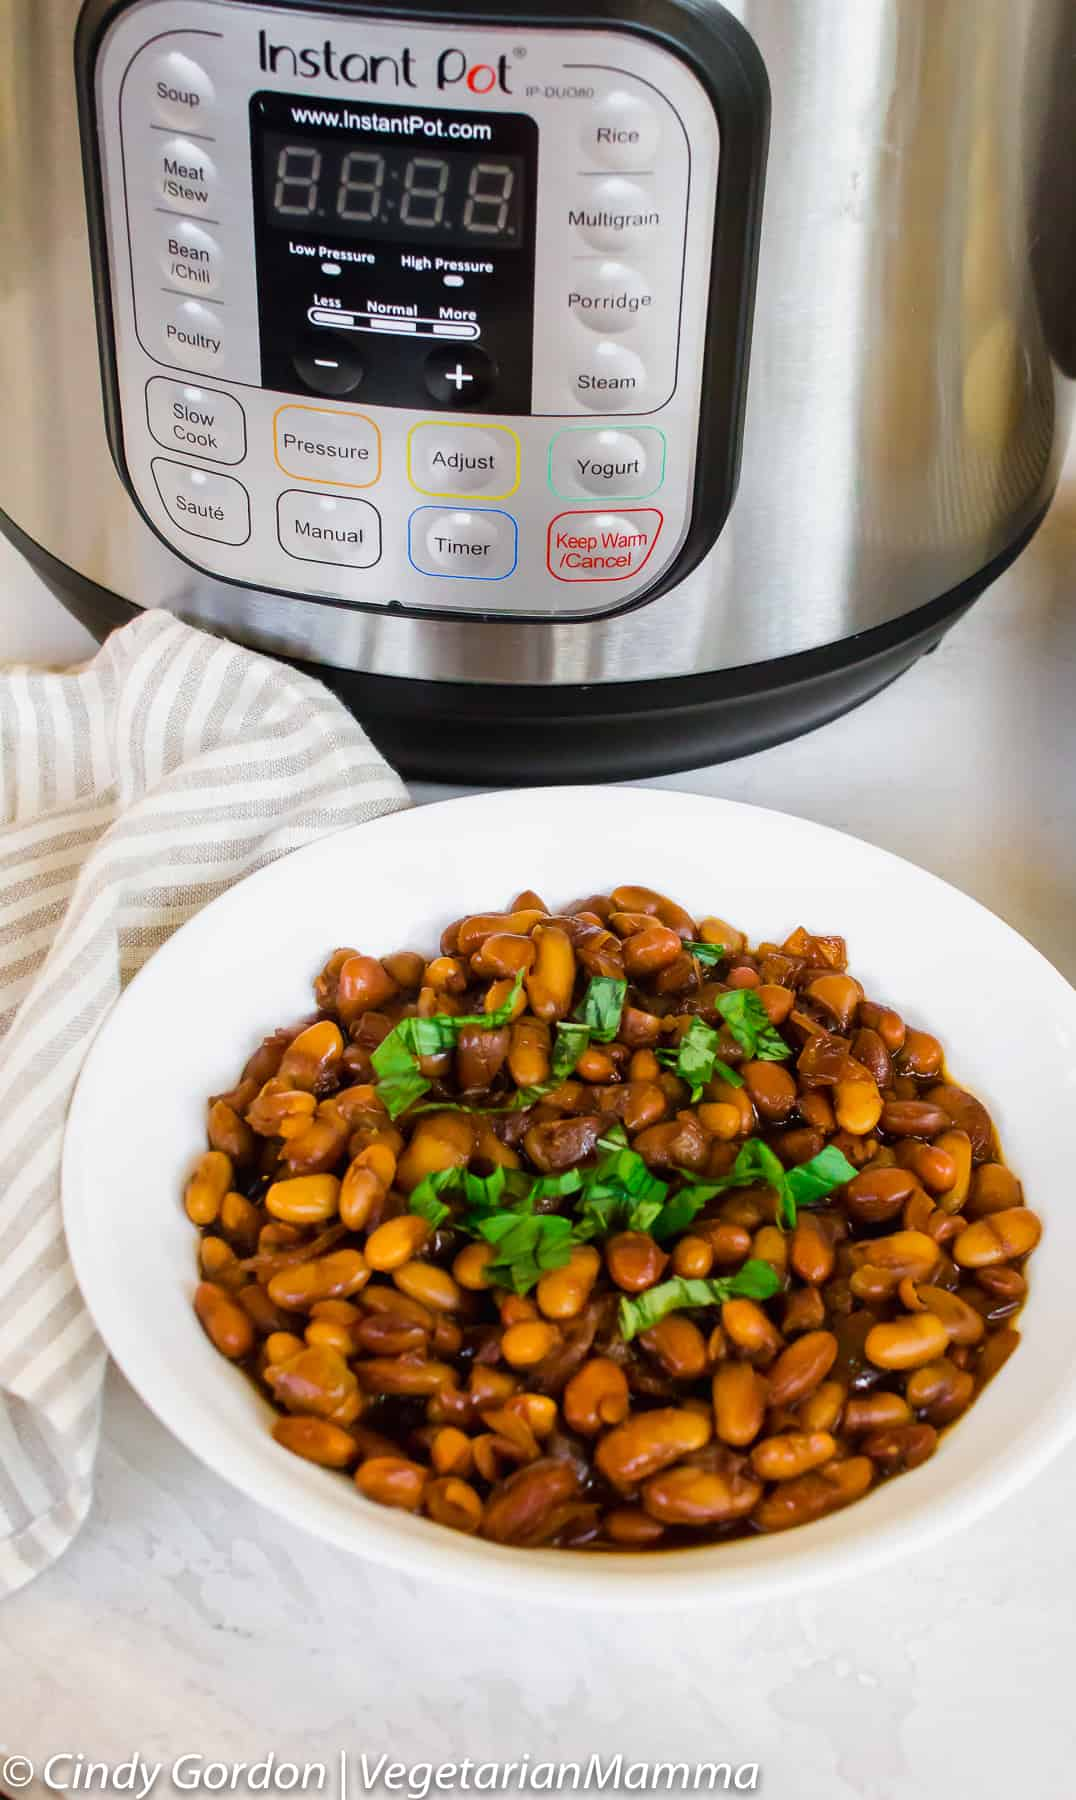 Baked Beans made in an instant, picture of beans in bowl and instant pot in background.